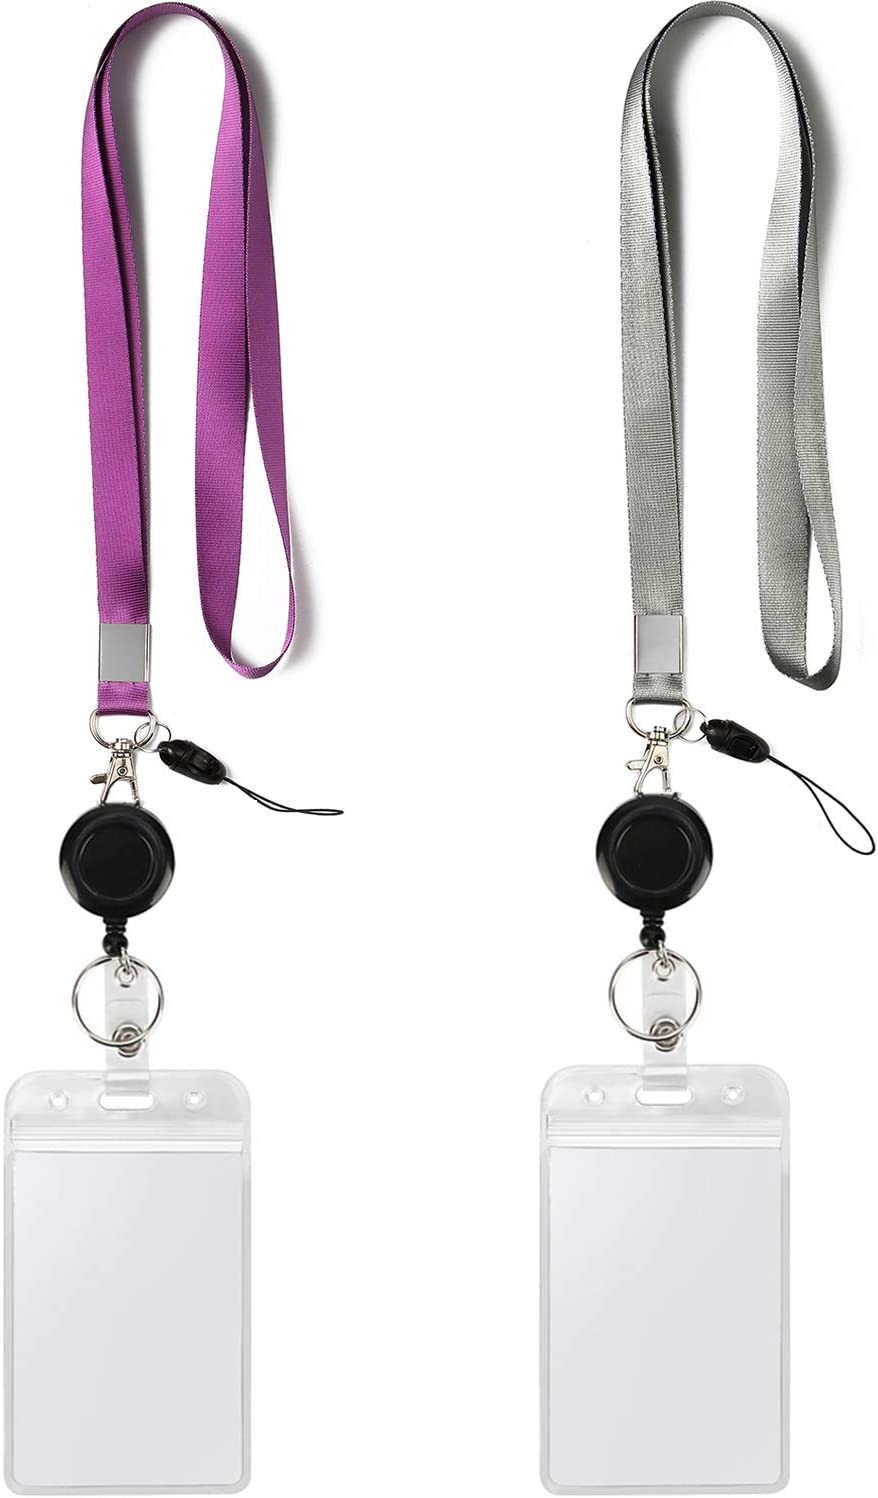 2 Pack Id Badge Holders With Purple Lanyards And Retractable Badge Reel Office Neck Grey Lanyard With Vertical Heavy Duty Id Holder Card Holder Punched Zipper Waterproof Resealable Clear Plastic Office Products Amazon Com